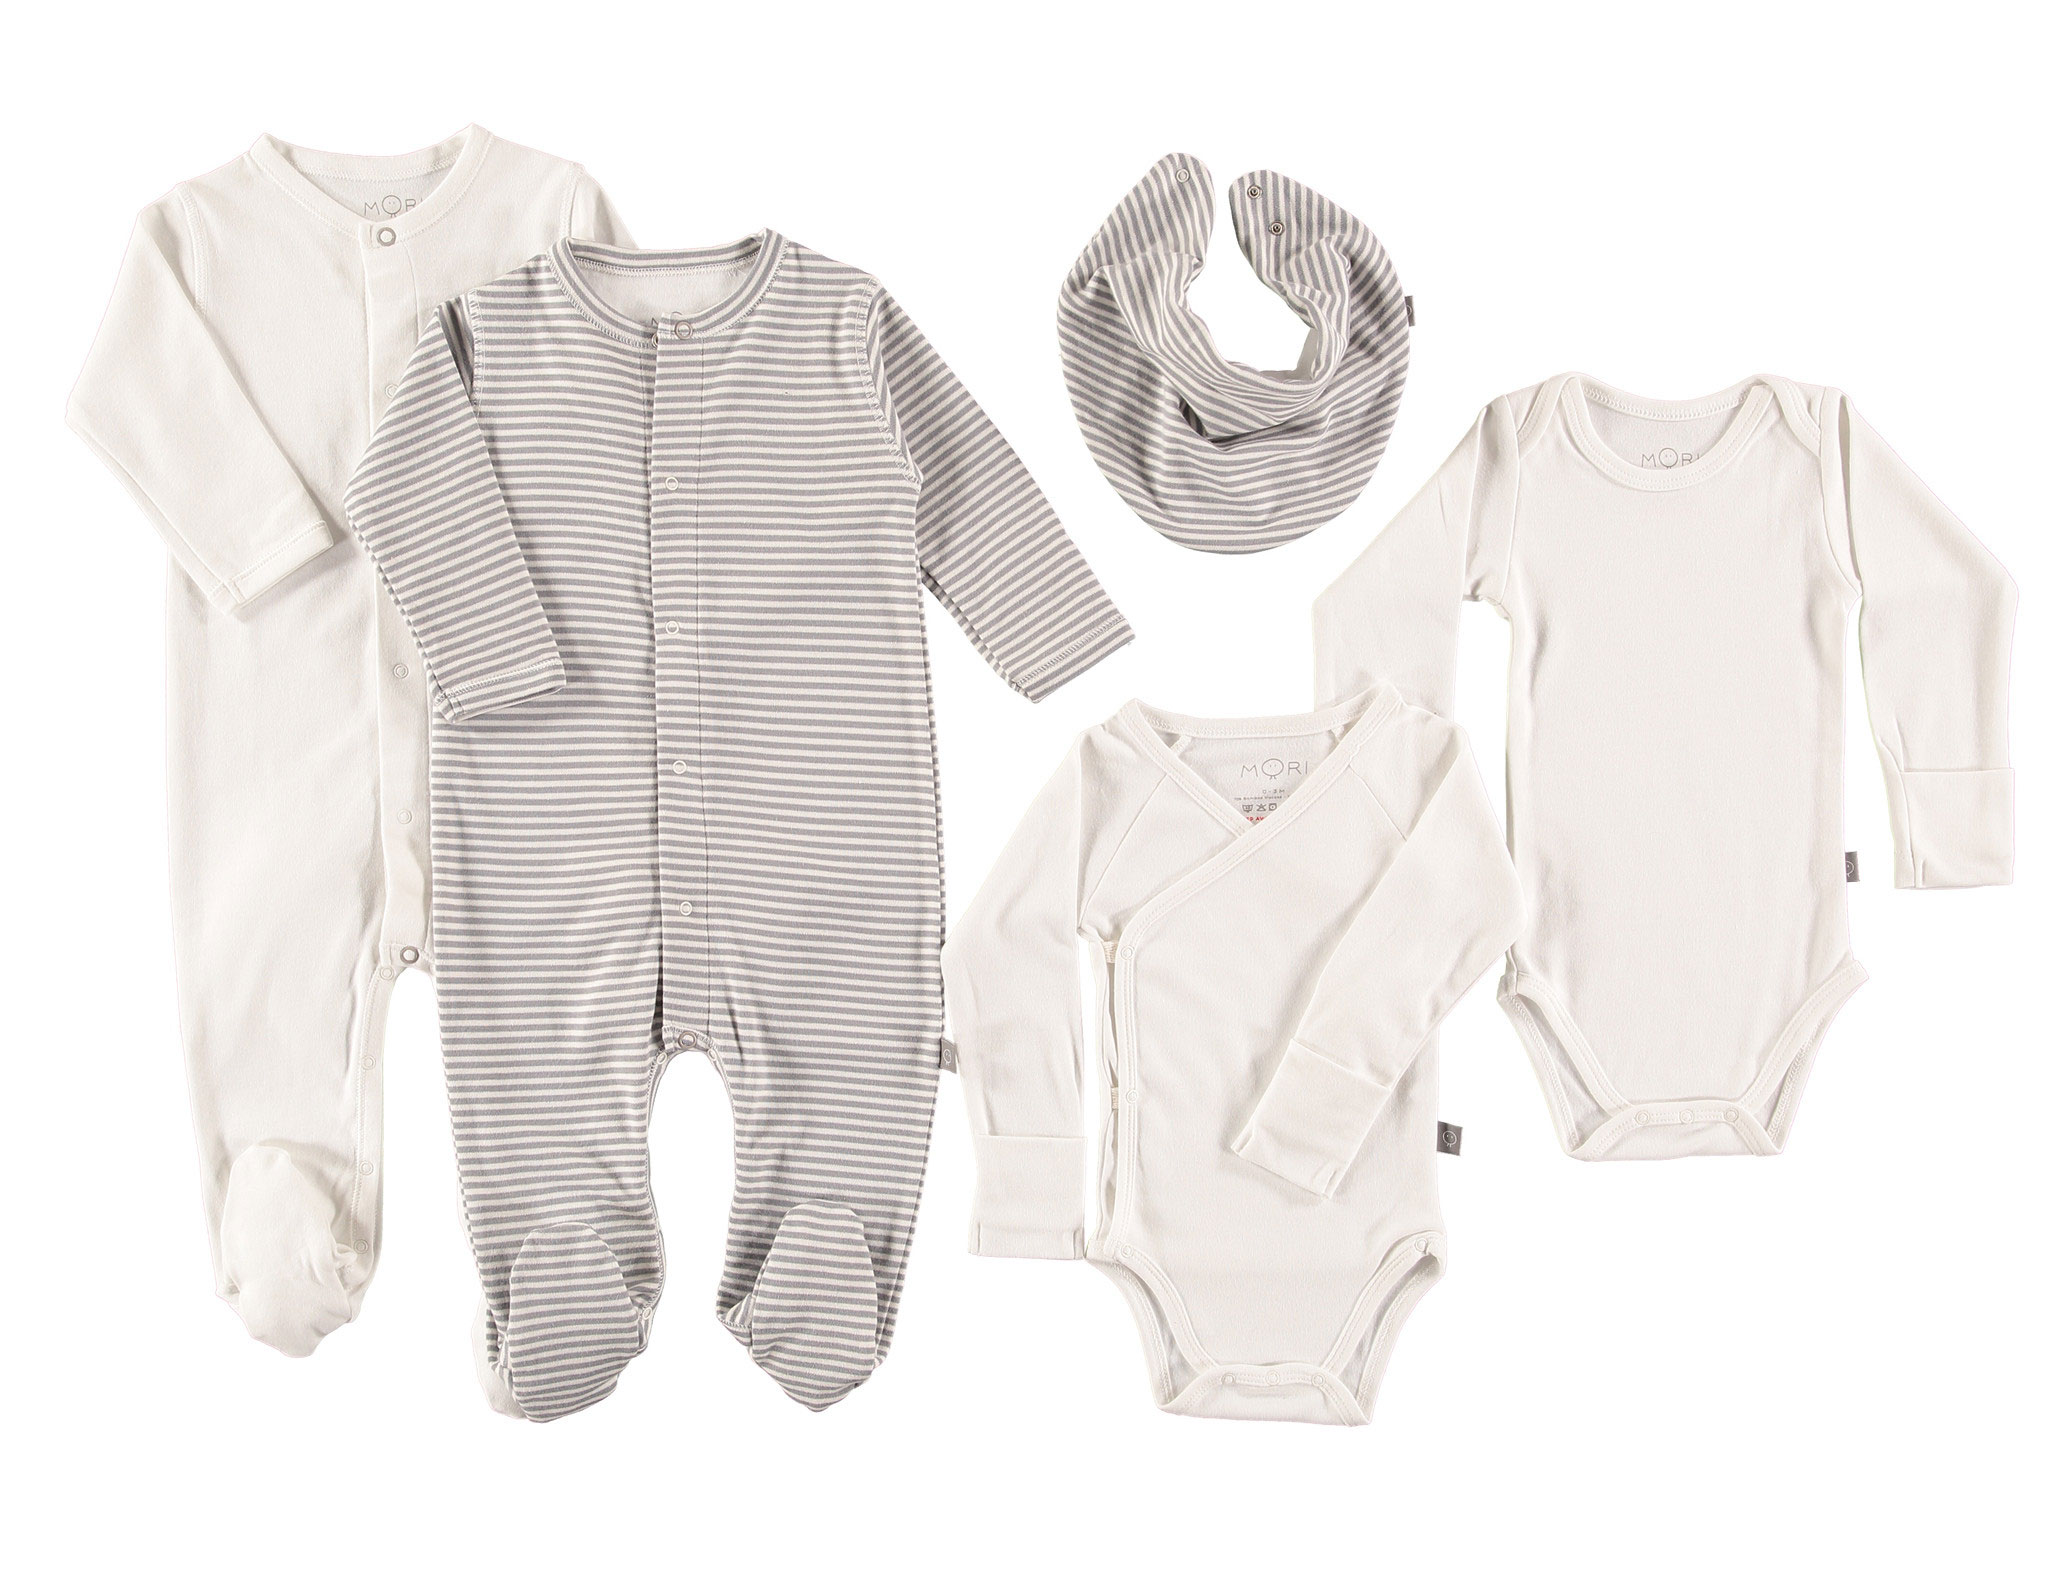 Mori baby essentials